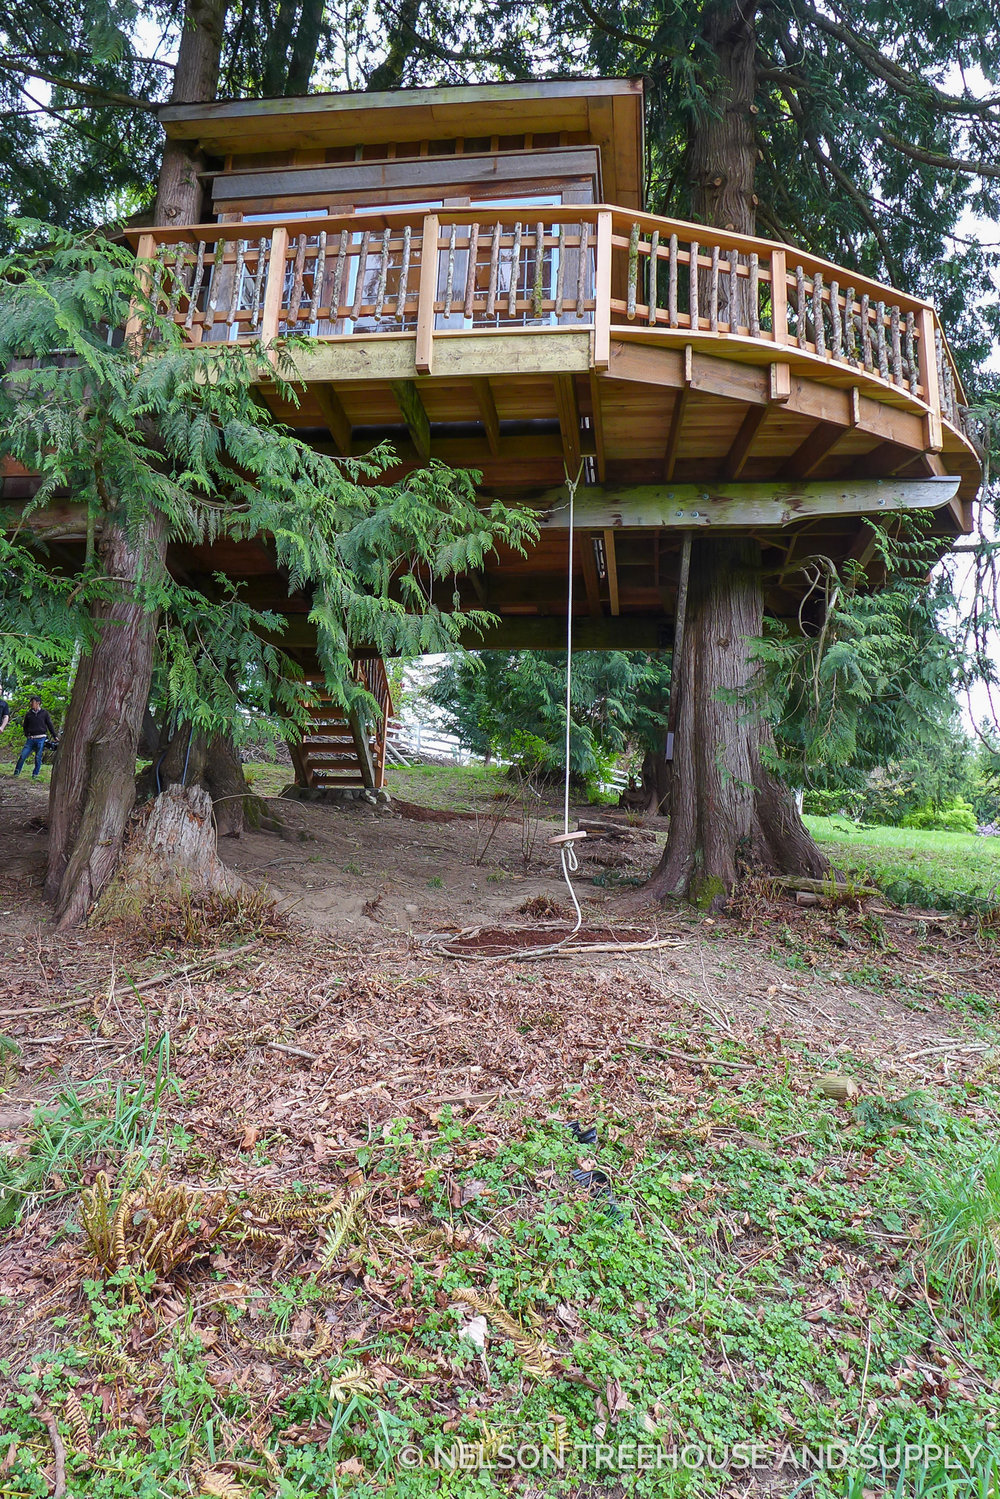 Henry added this swing beneath the platform. He and his brother, Charlie, used to play with Lolly and Peter's son, Brian, on a swing while Pete built this treehouse back in 2002.